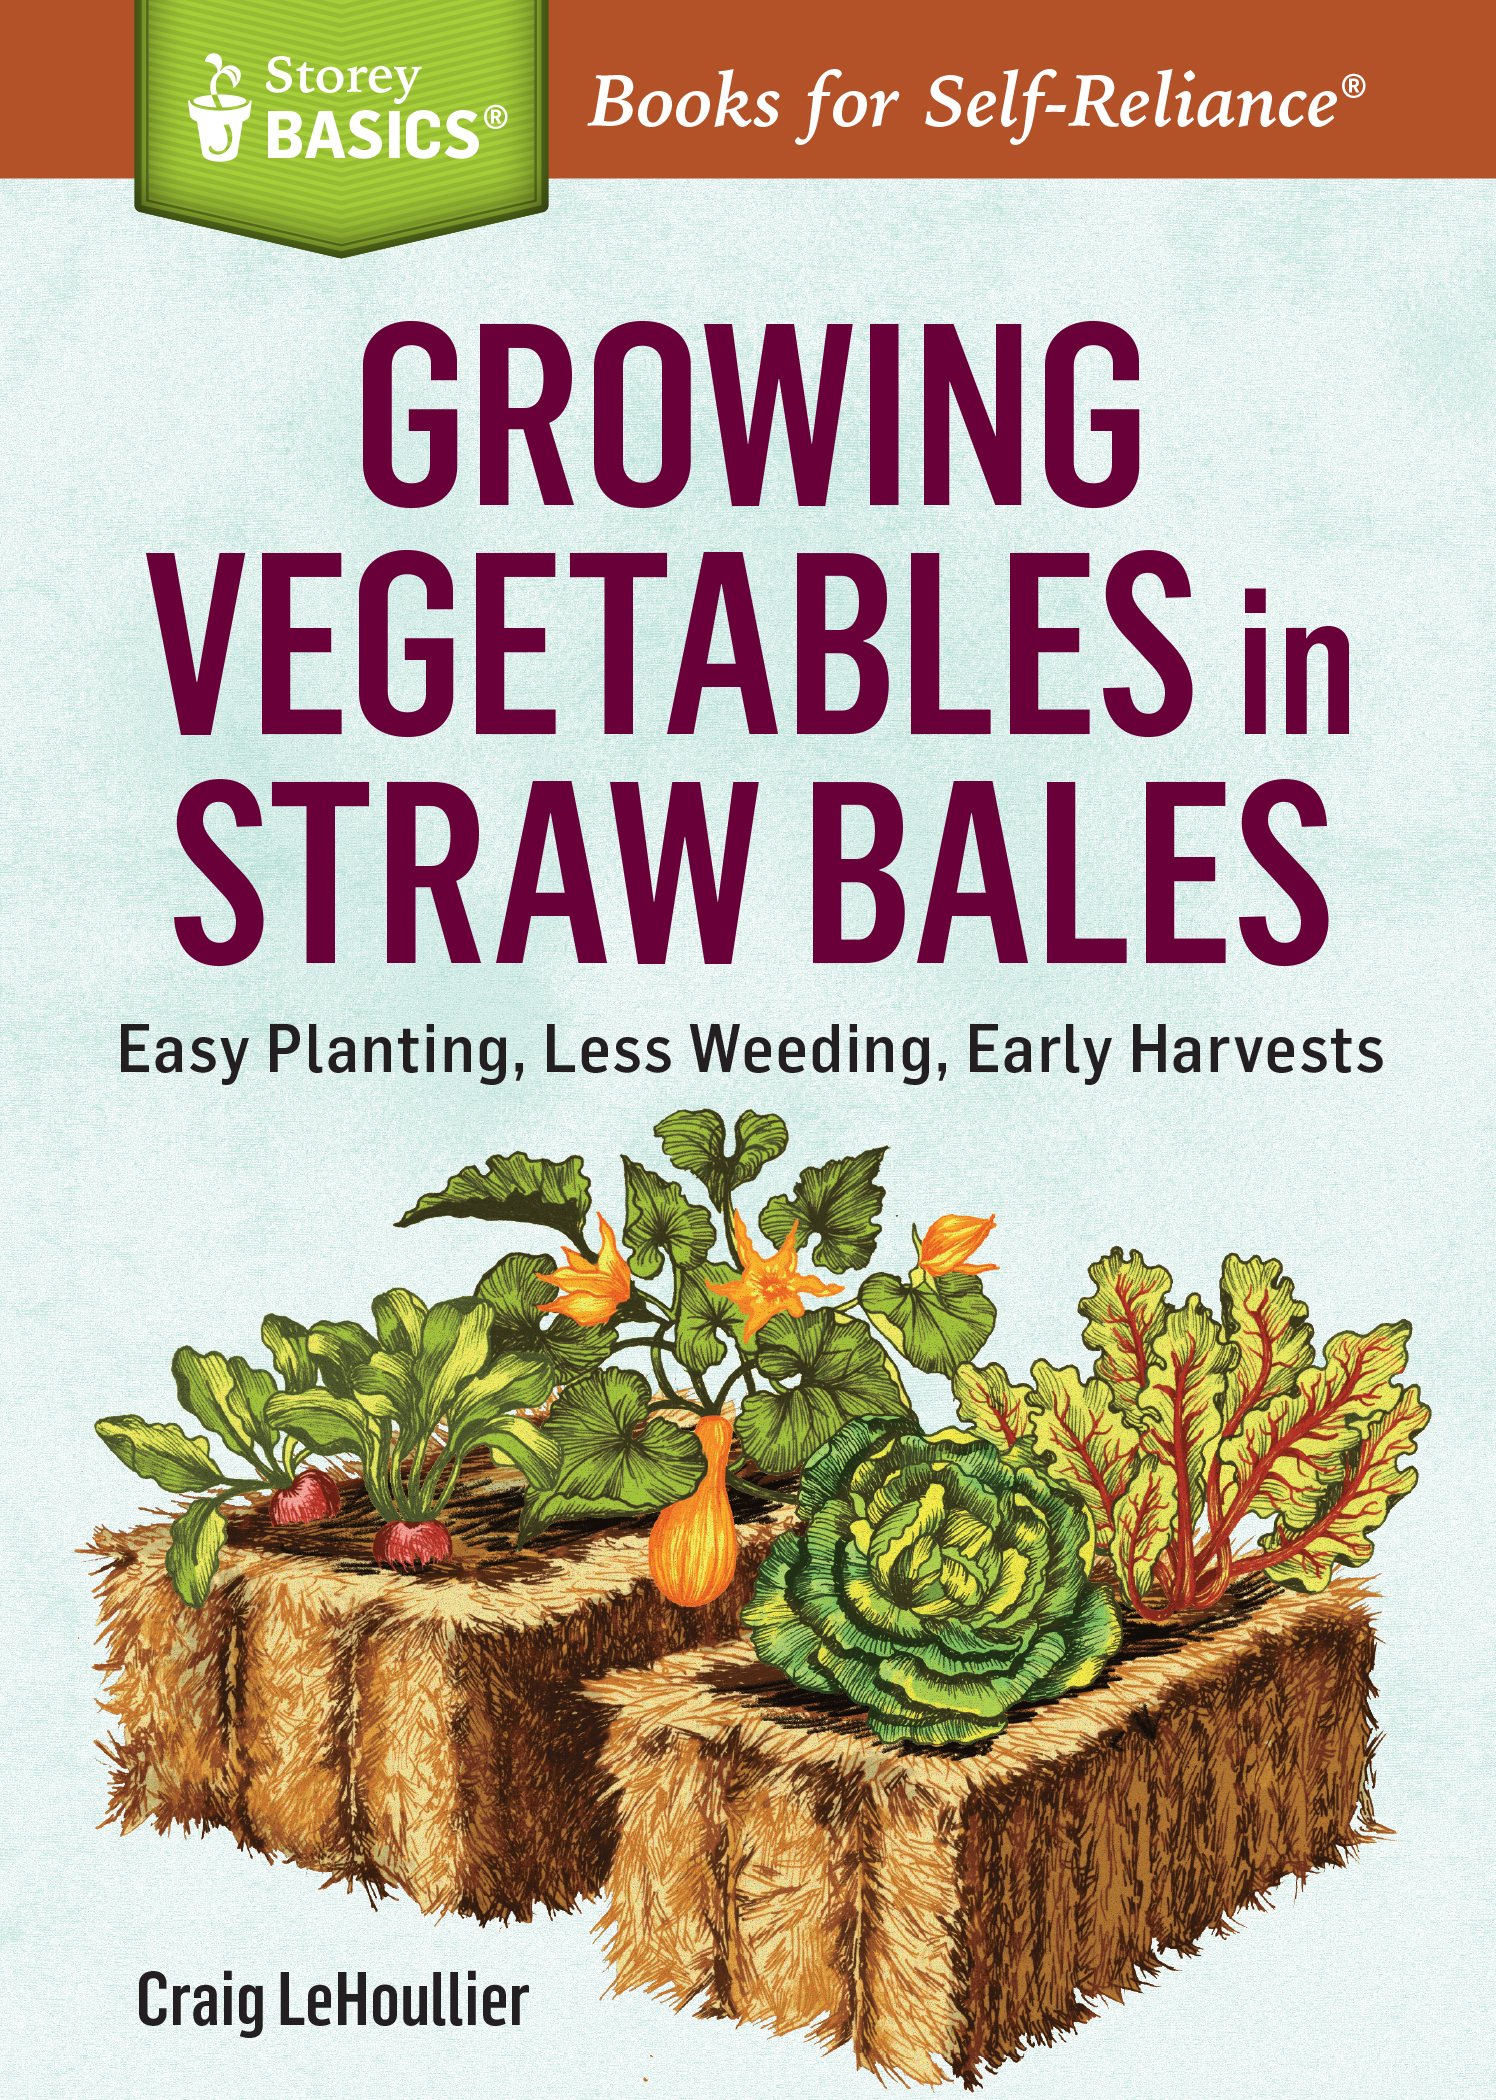 Growing Vegetables in Straw Bales Easy Planting, Less Weeding, Early Harvests. A Storey BASICS® Title - Craig LeHoullier